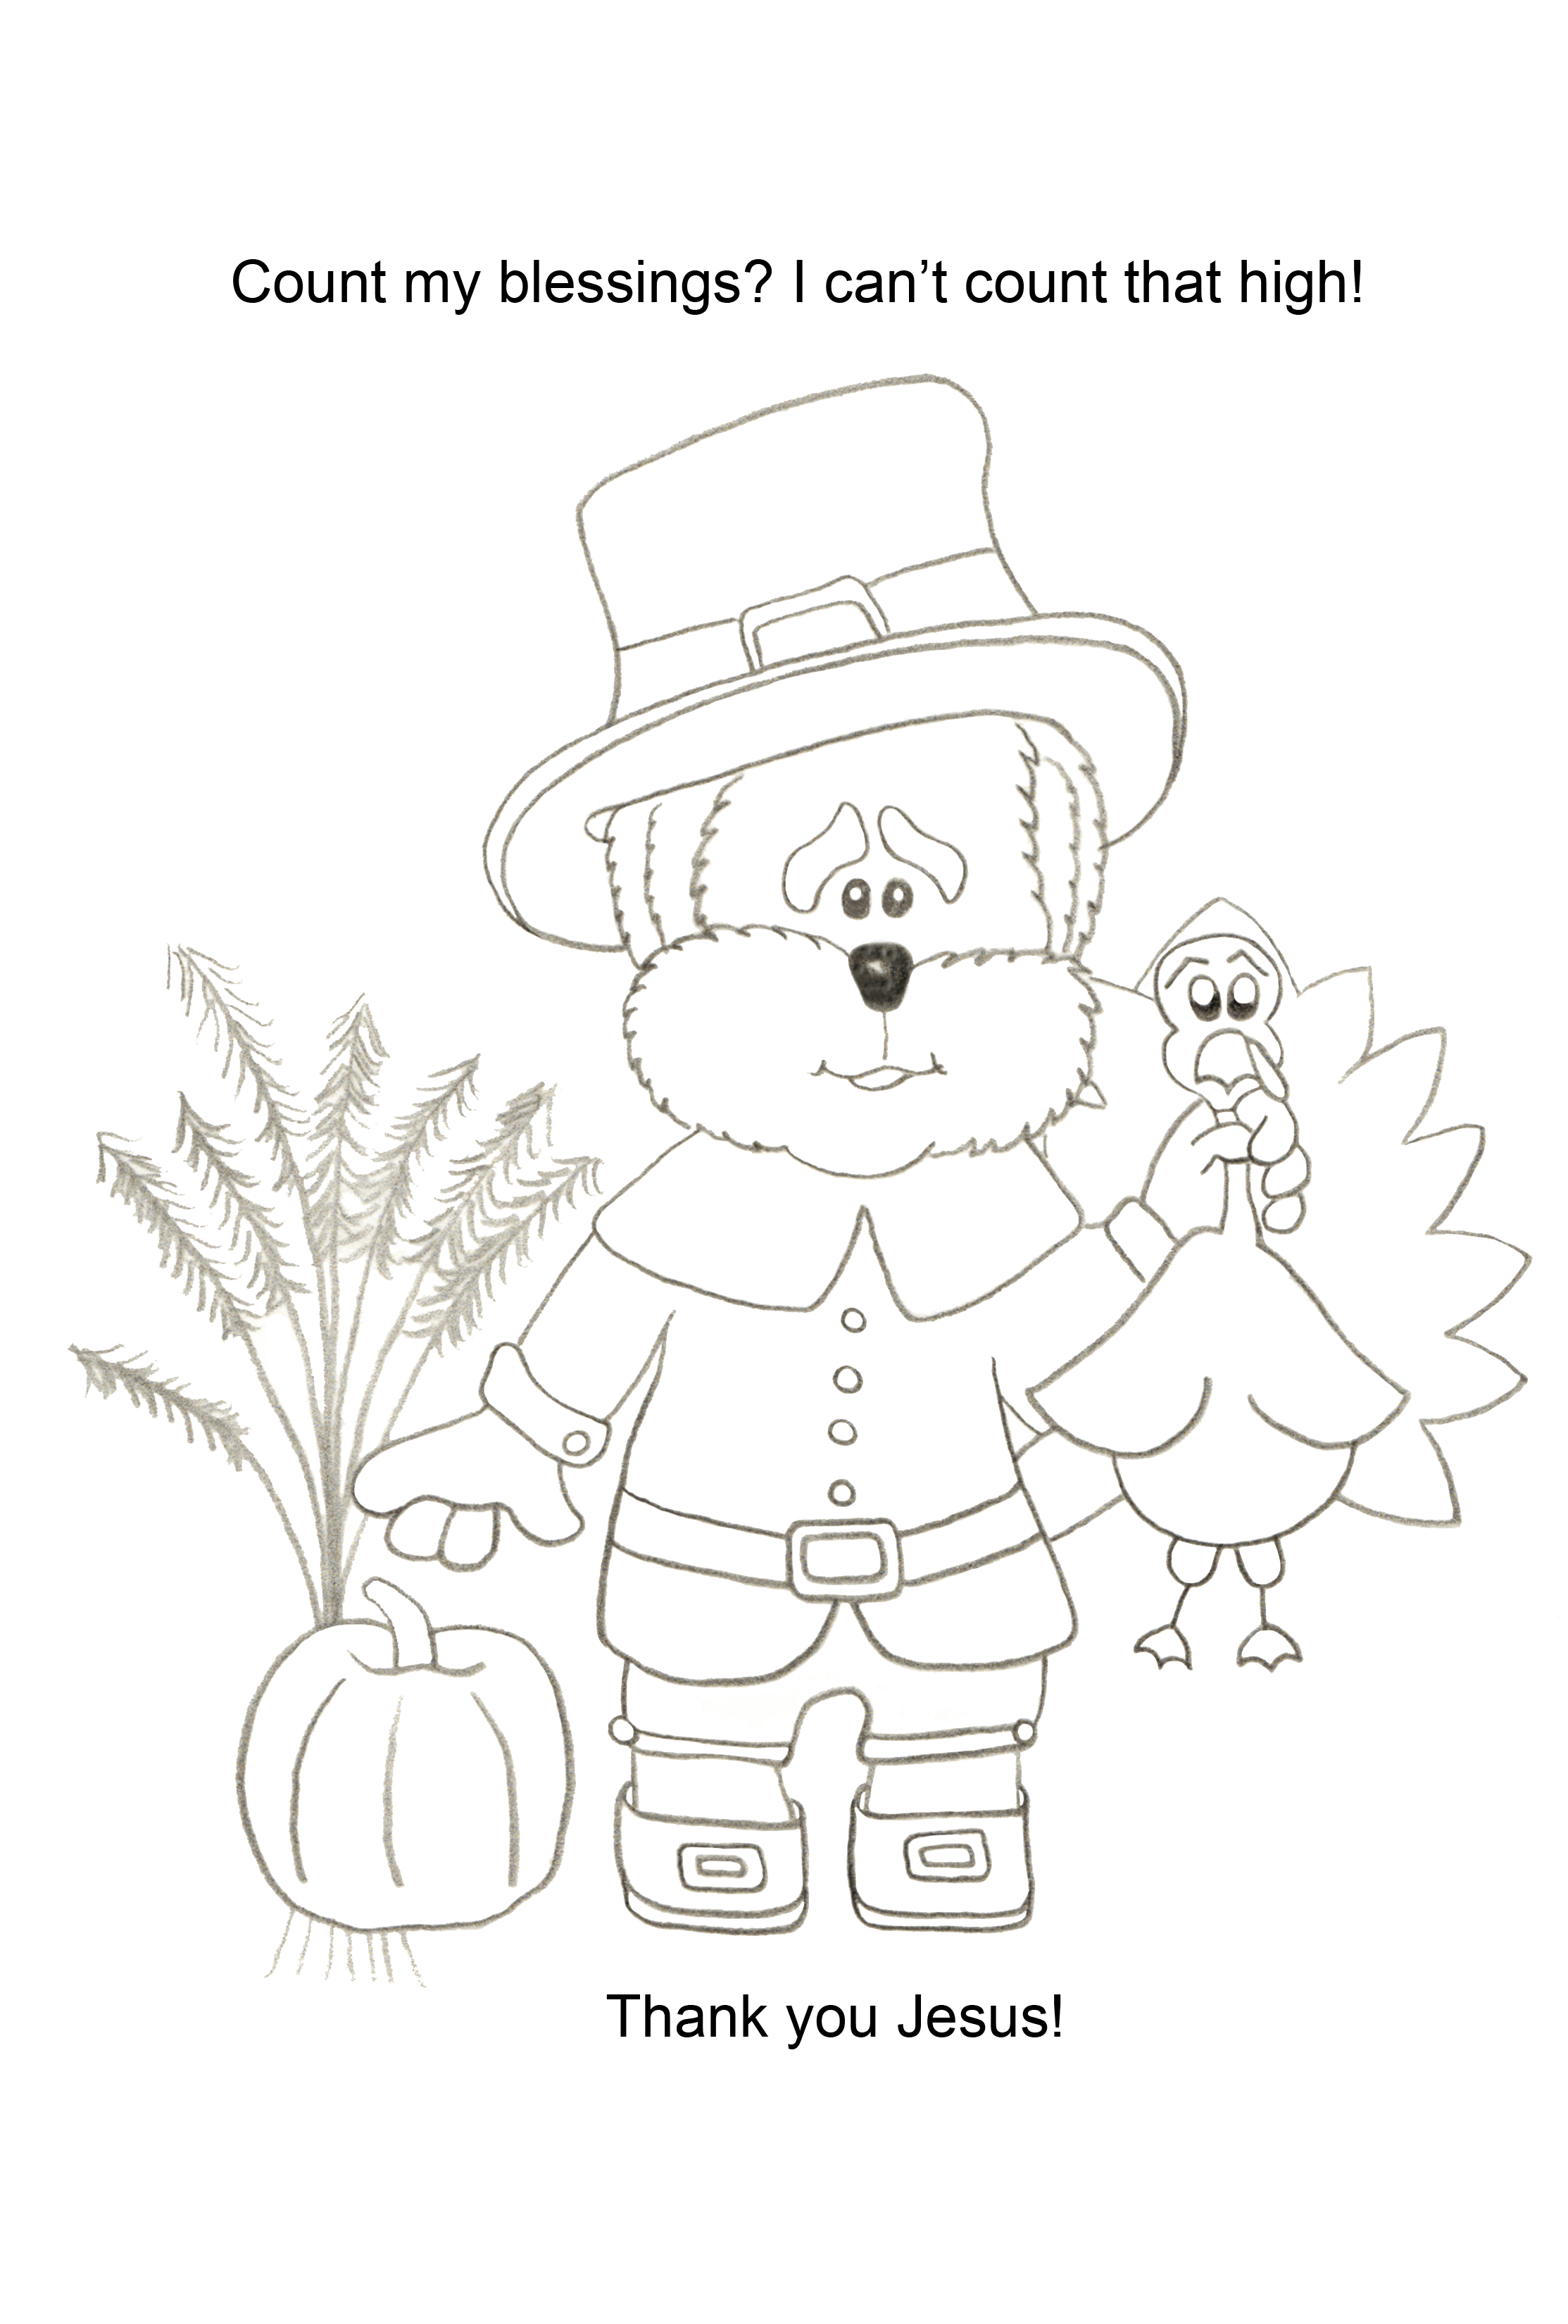 Count Your Blessings Coloring Page wwwtopsimages